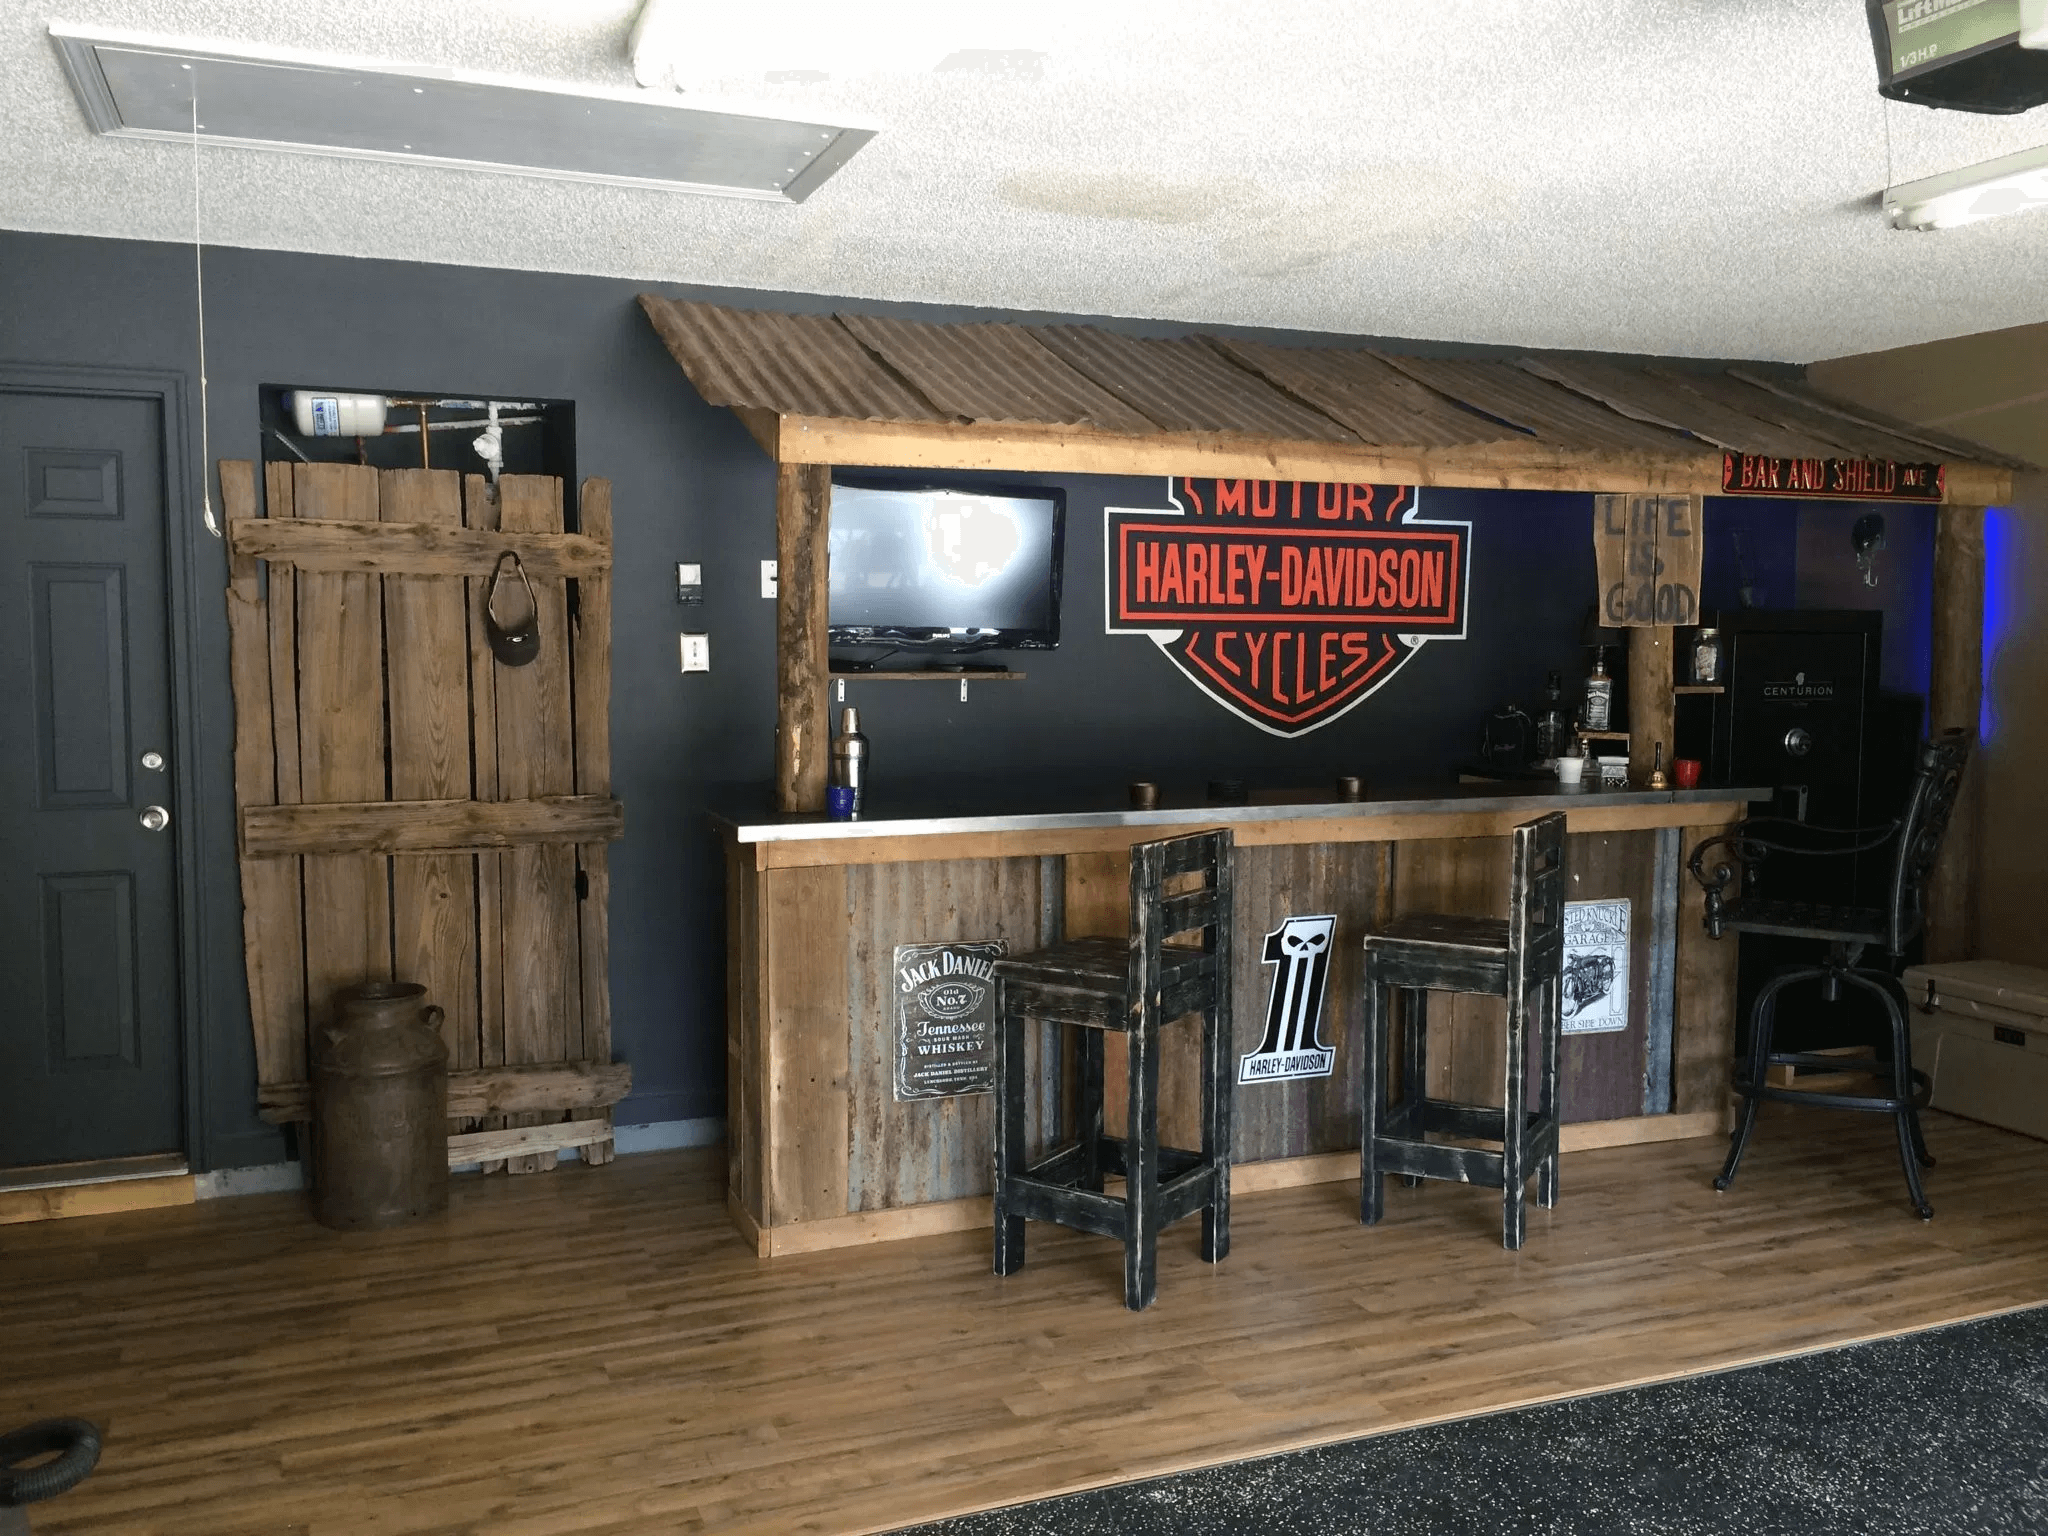 Makeover ideas Garage bar design ideas